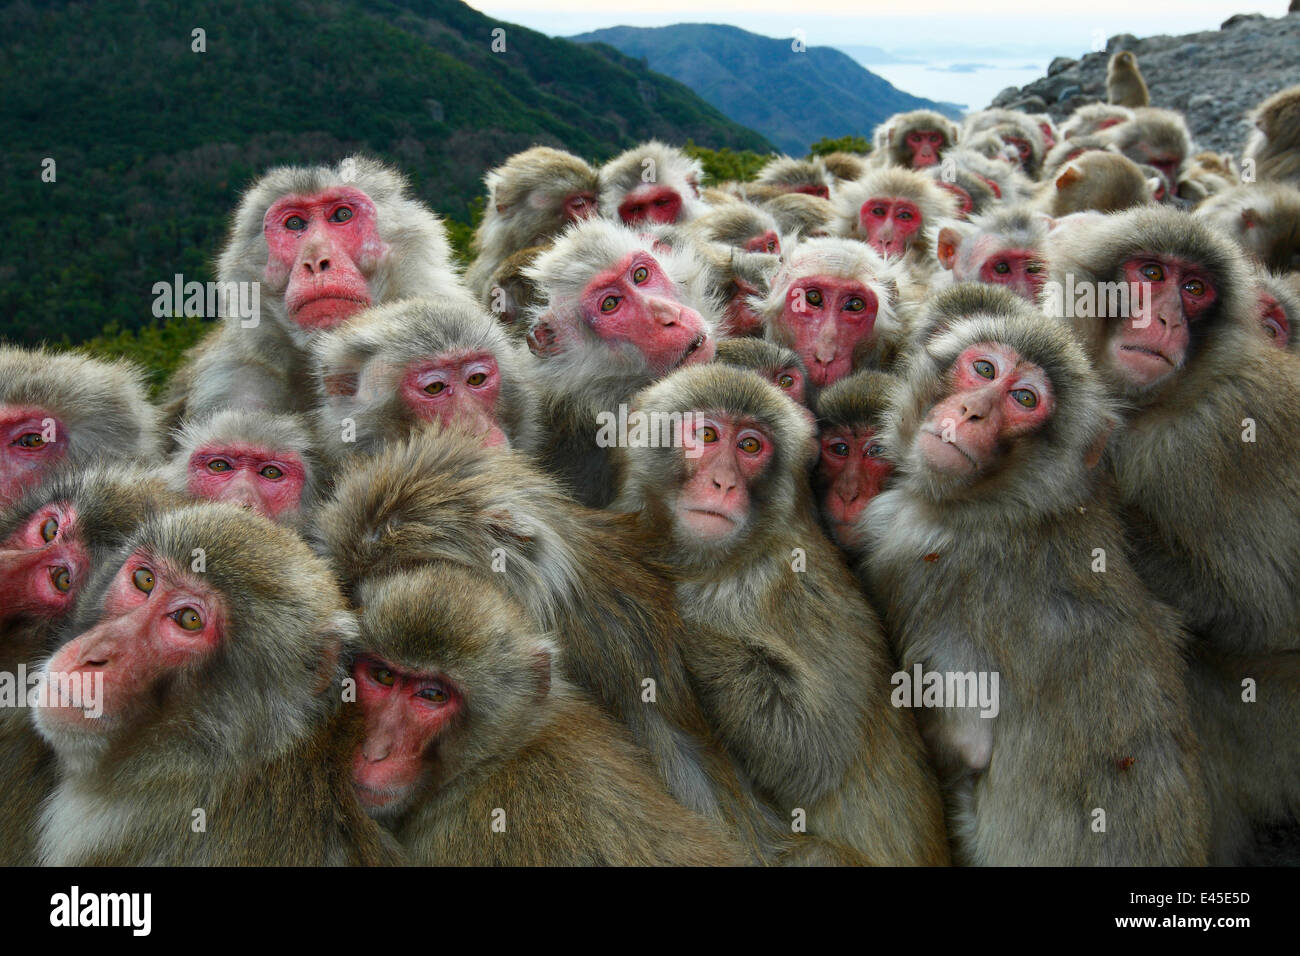 Japanese macaques (Macaca fuscata) huddling together for warmth on a cold day, Shodoshima, Japan Stock Photo